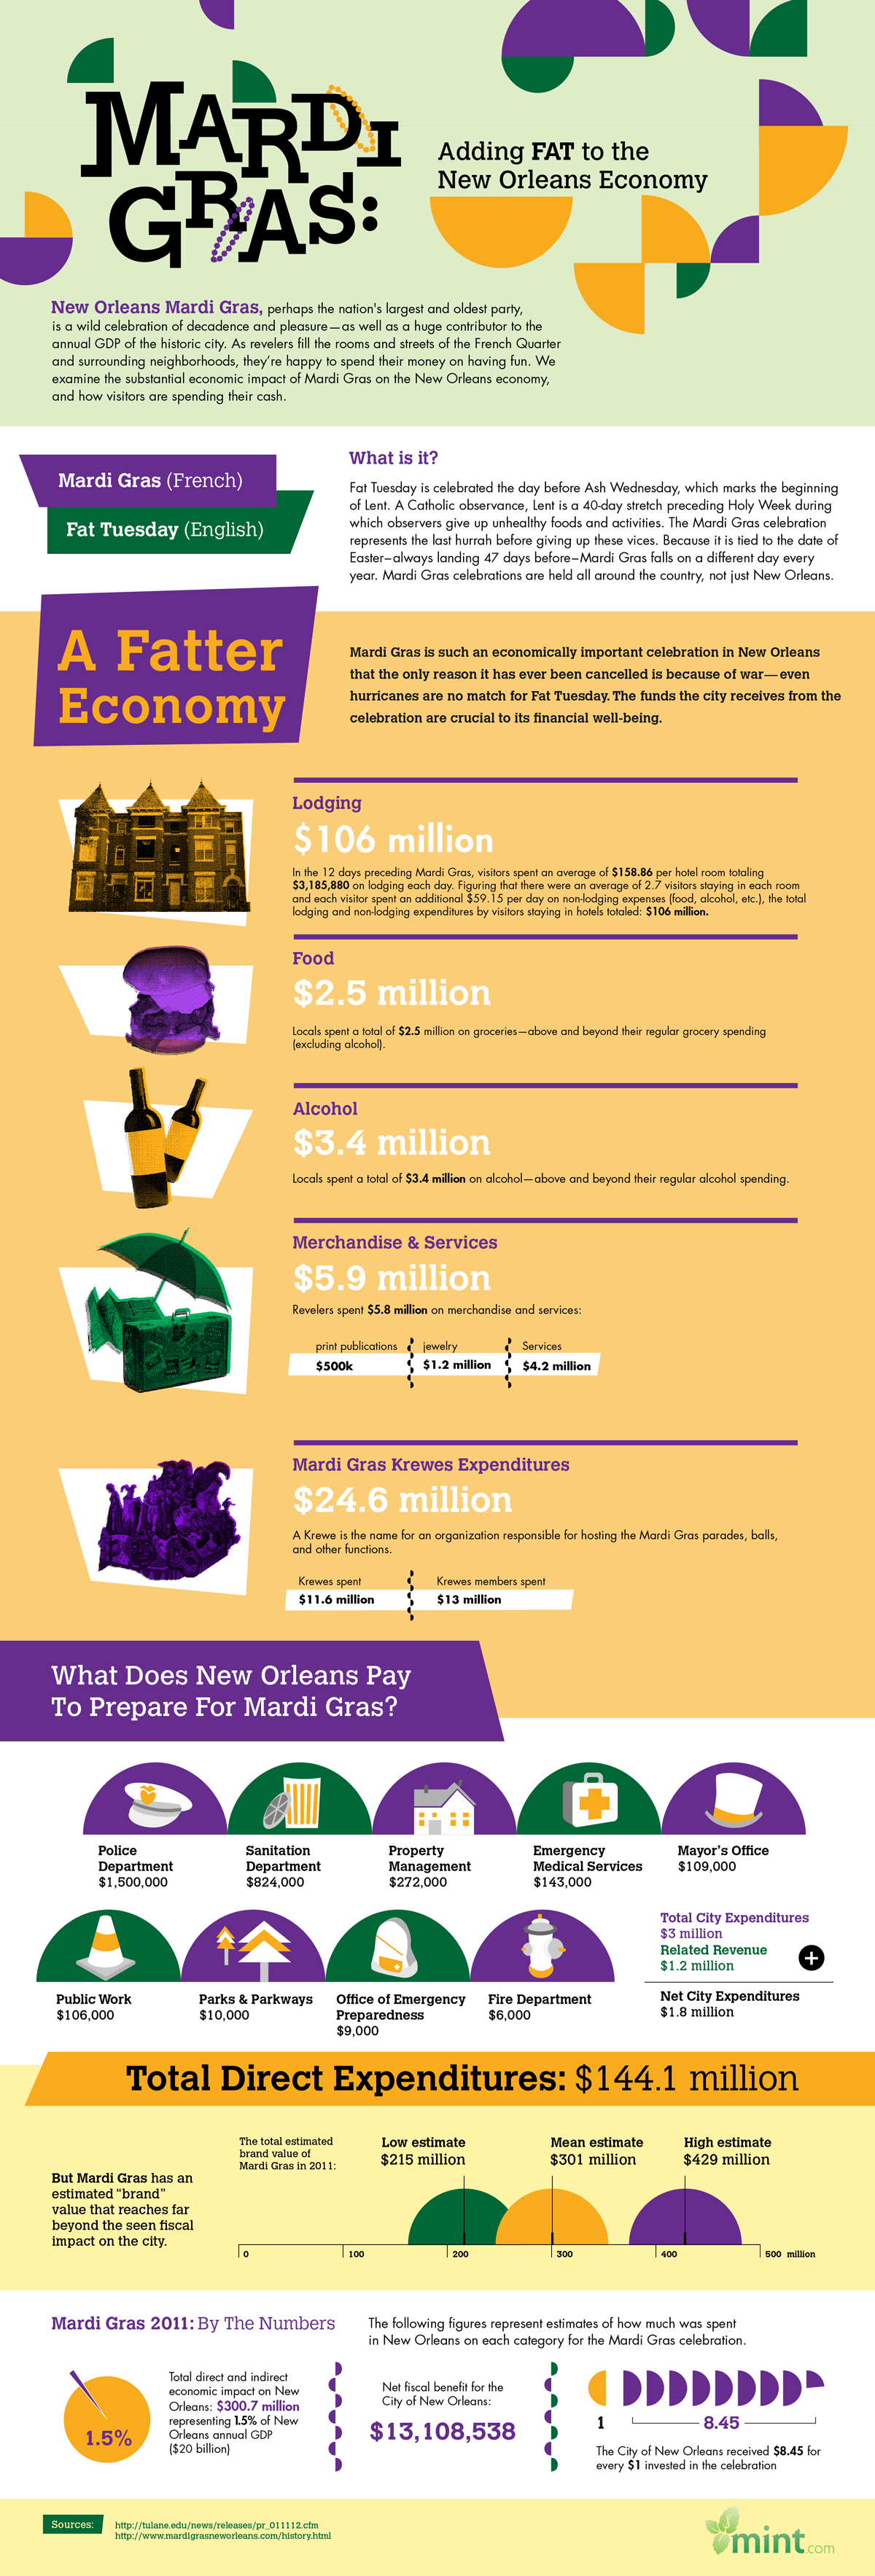 Putting the Fat in Fat Tuesday: A Visual Guide to Mardi Gras' Impact on New Orleans' Economy